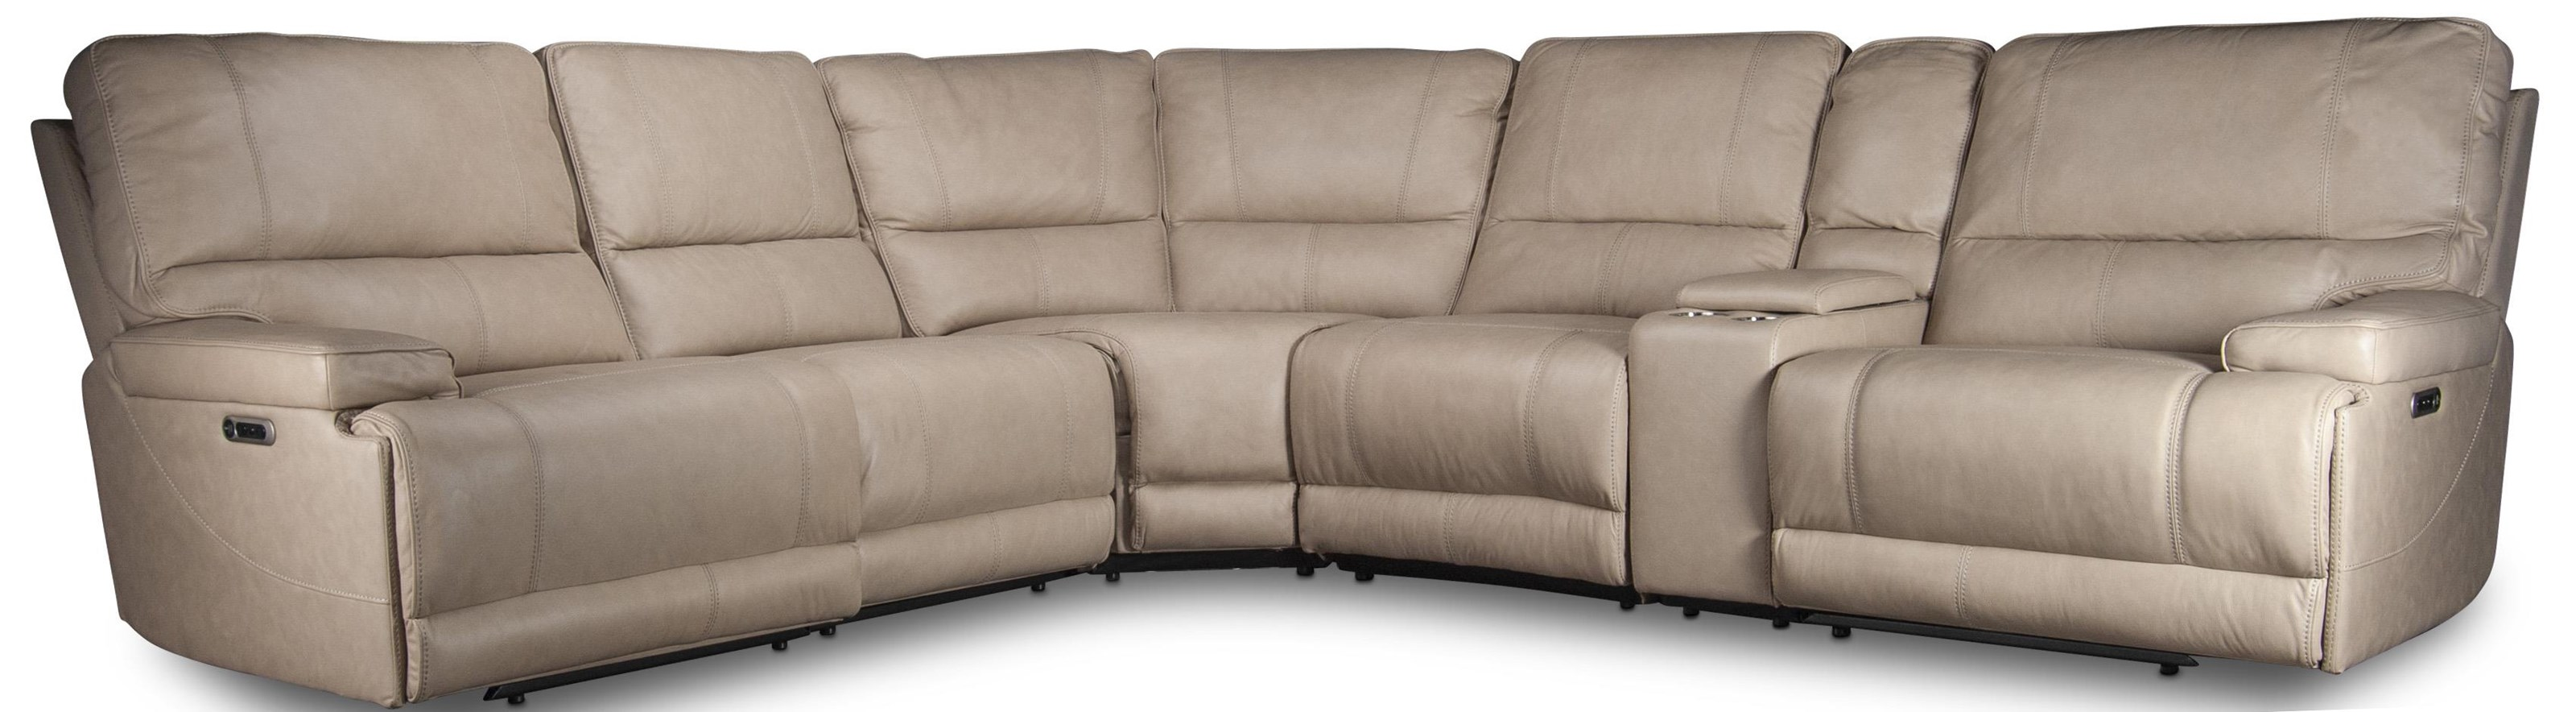 Wade Wade Leather Match Power Sectional by Parker House at Morris Home